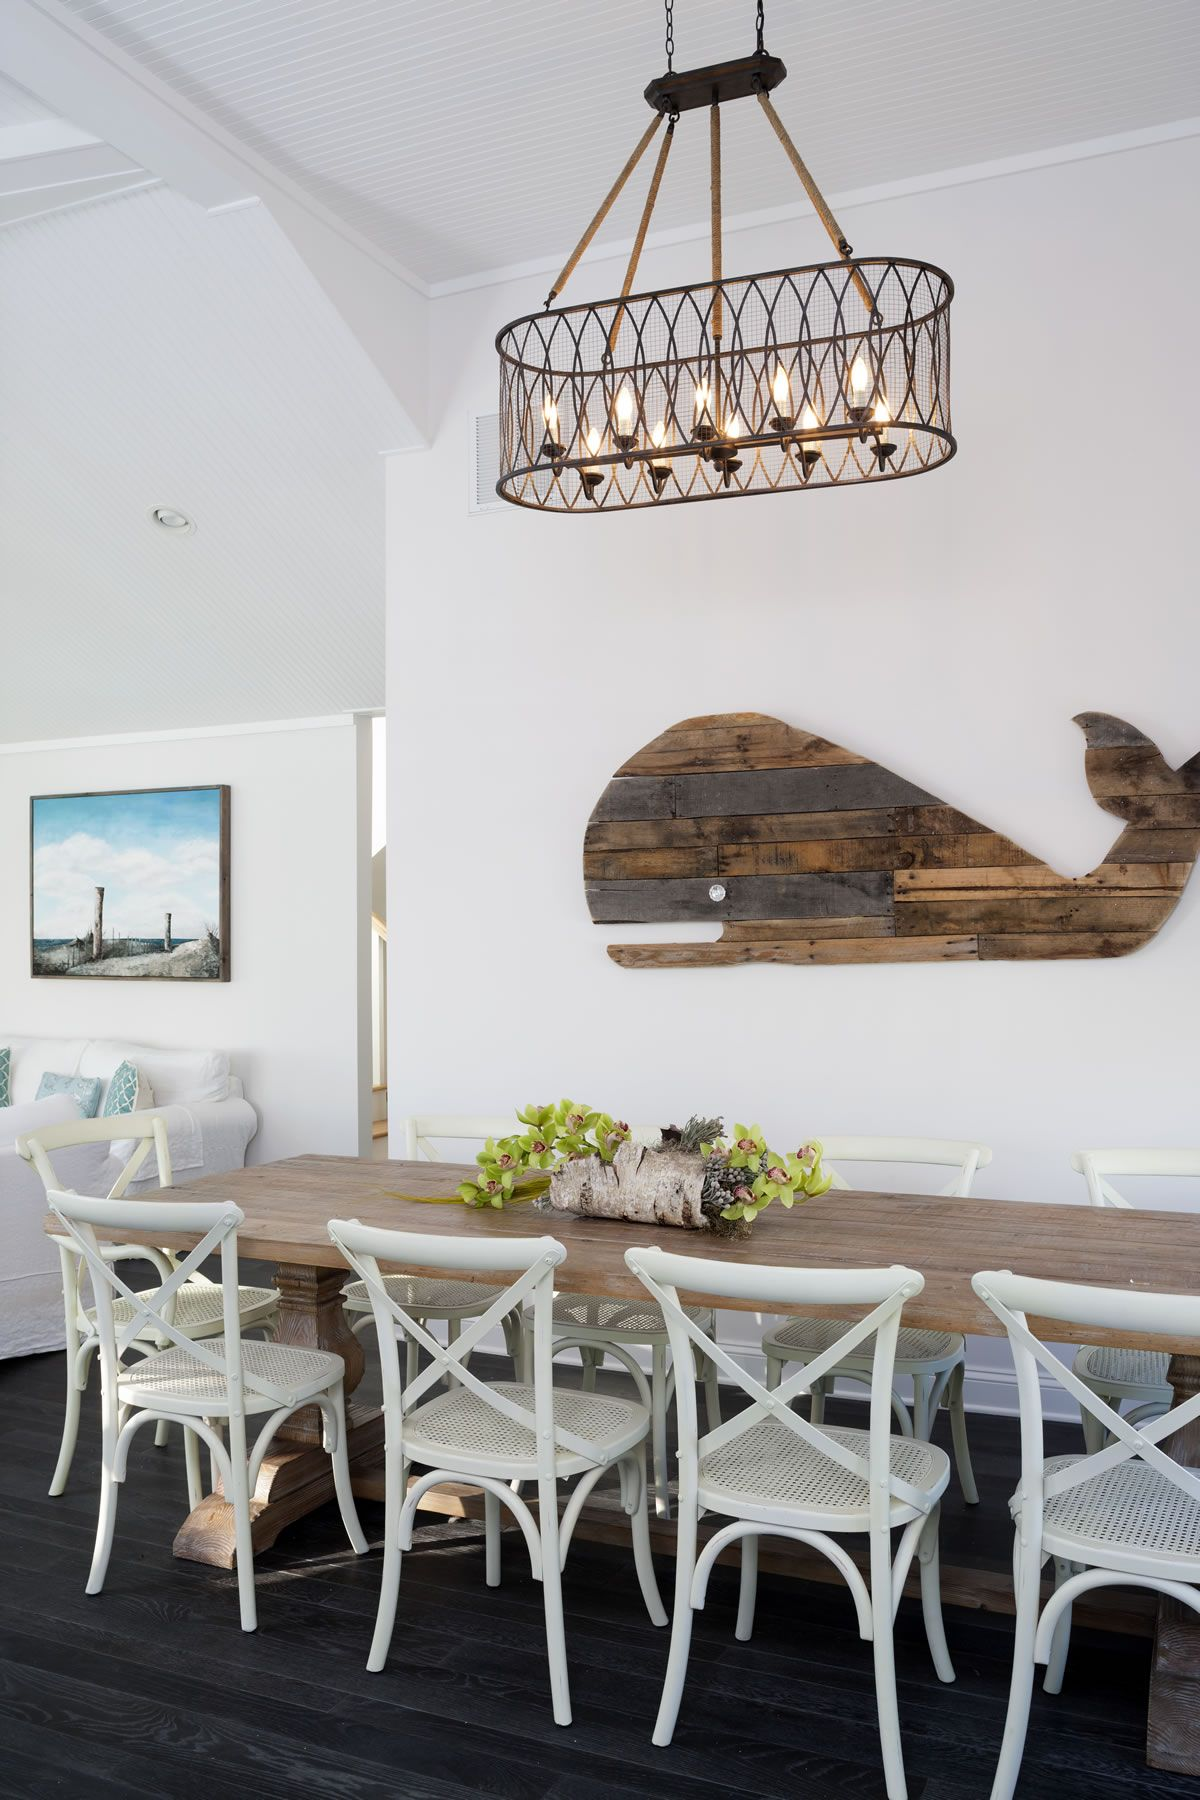 Wooden whale wall decor in a dining room. Beach house